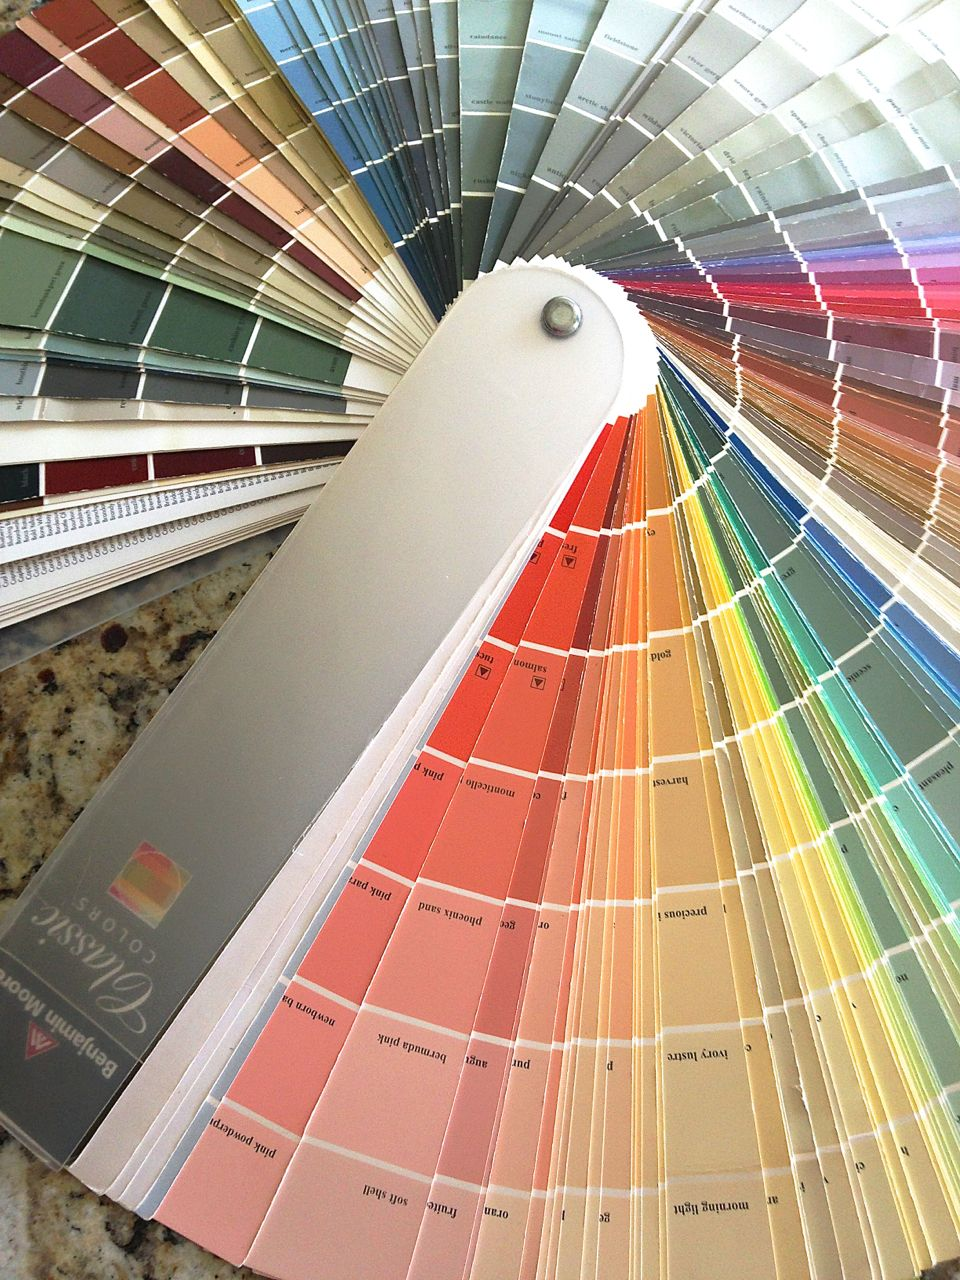 benjamin moore just has the best colors for a coastal color scheme